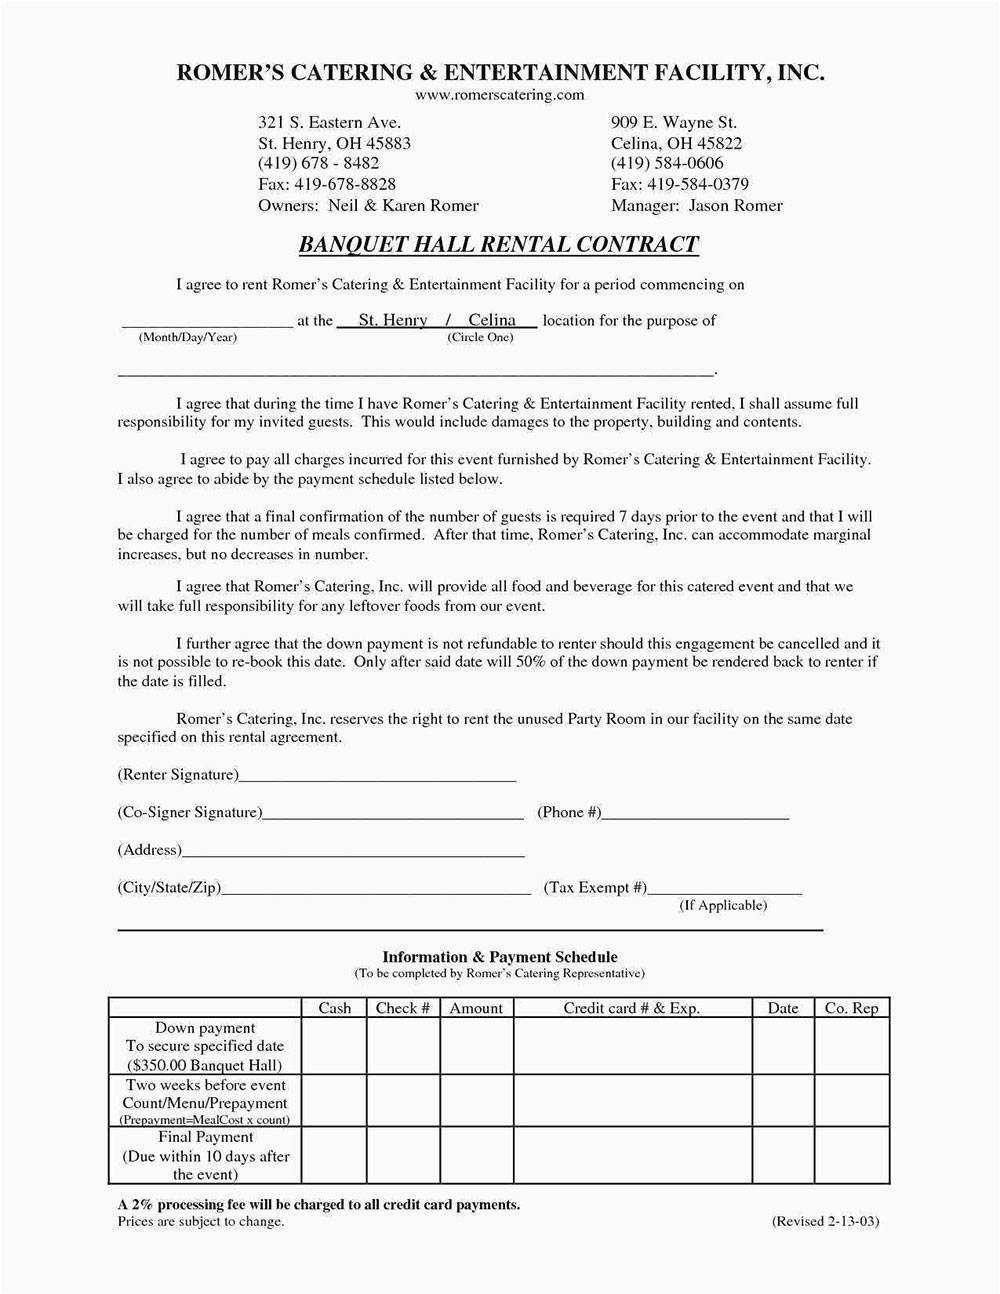 Rental Agreement Contract Example